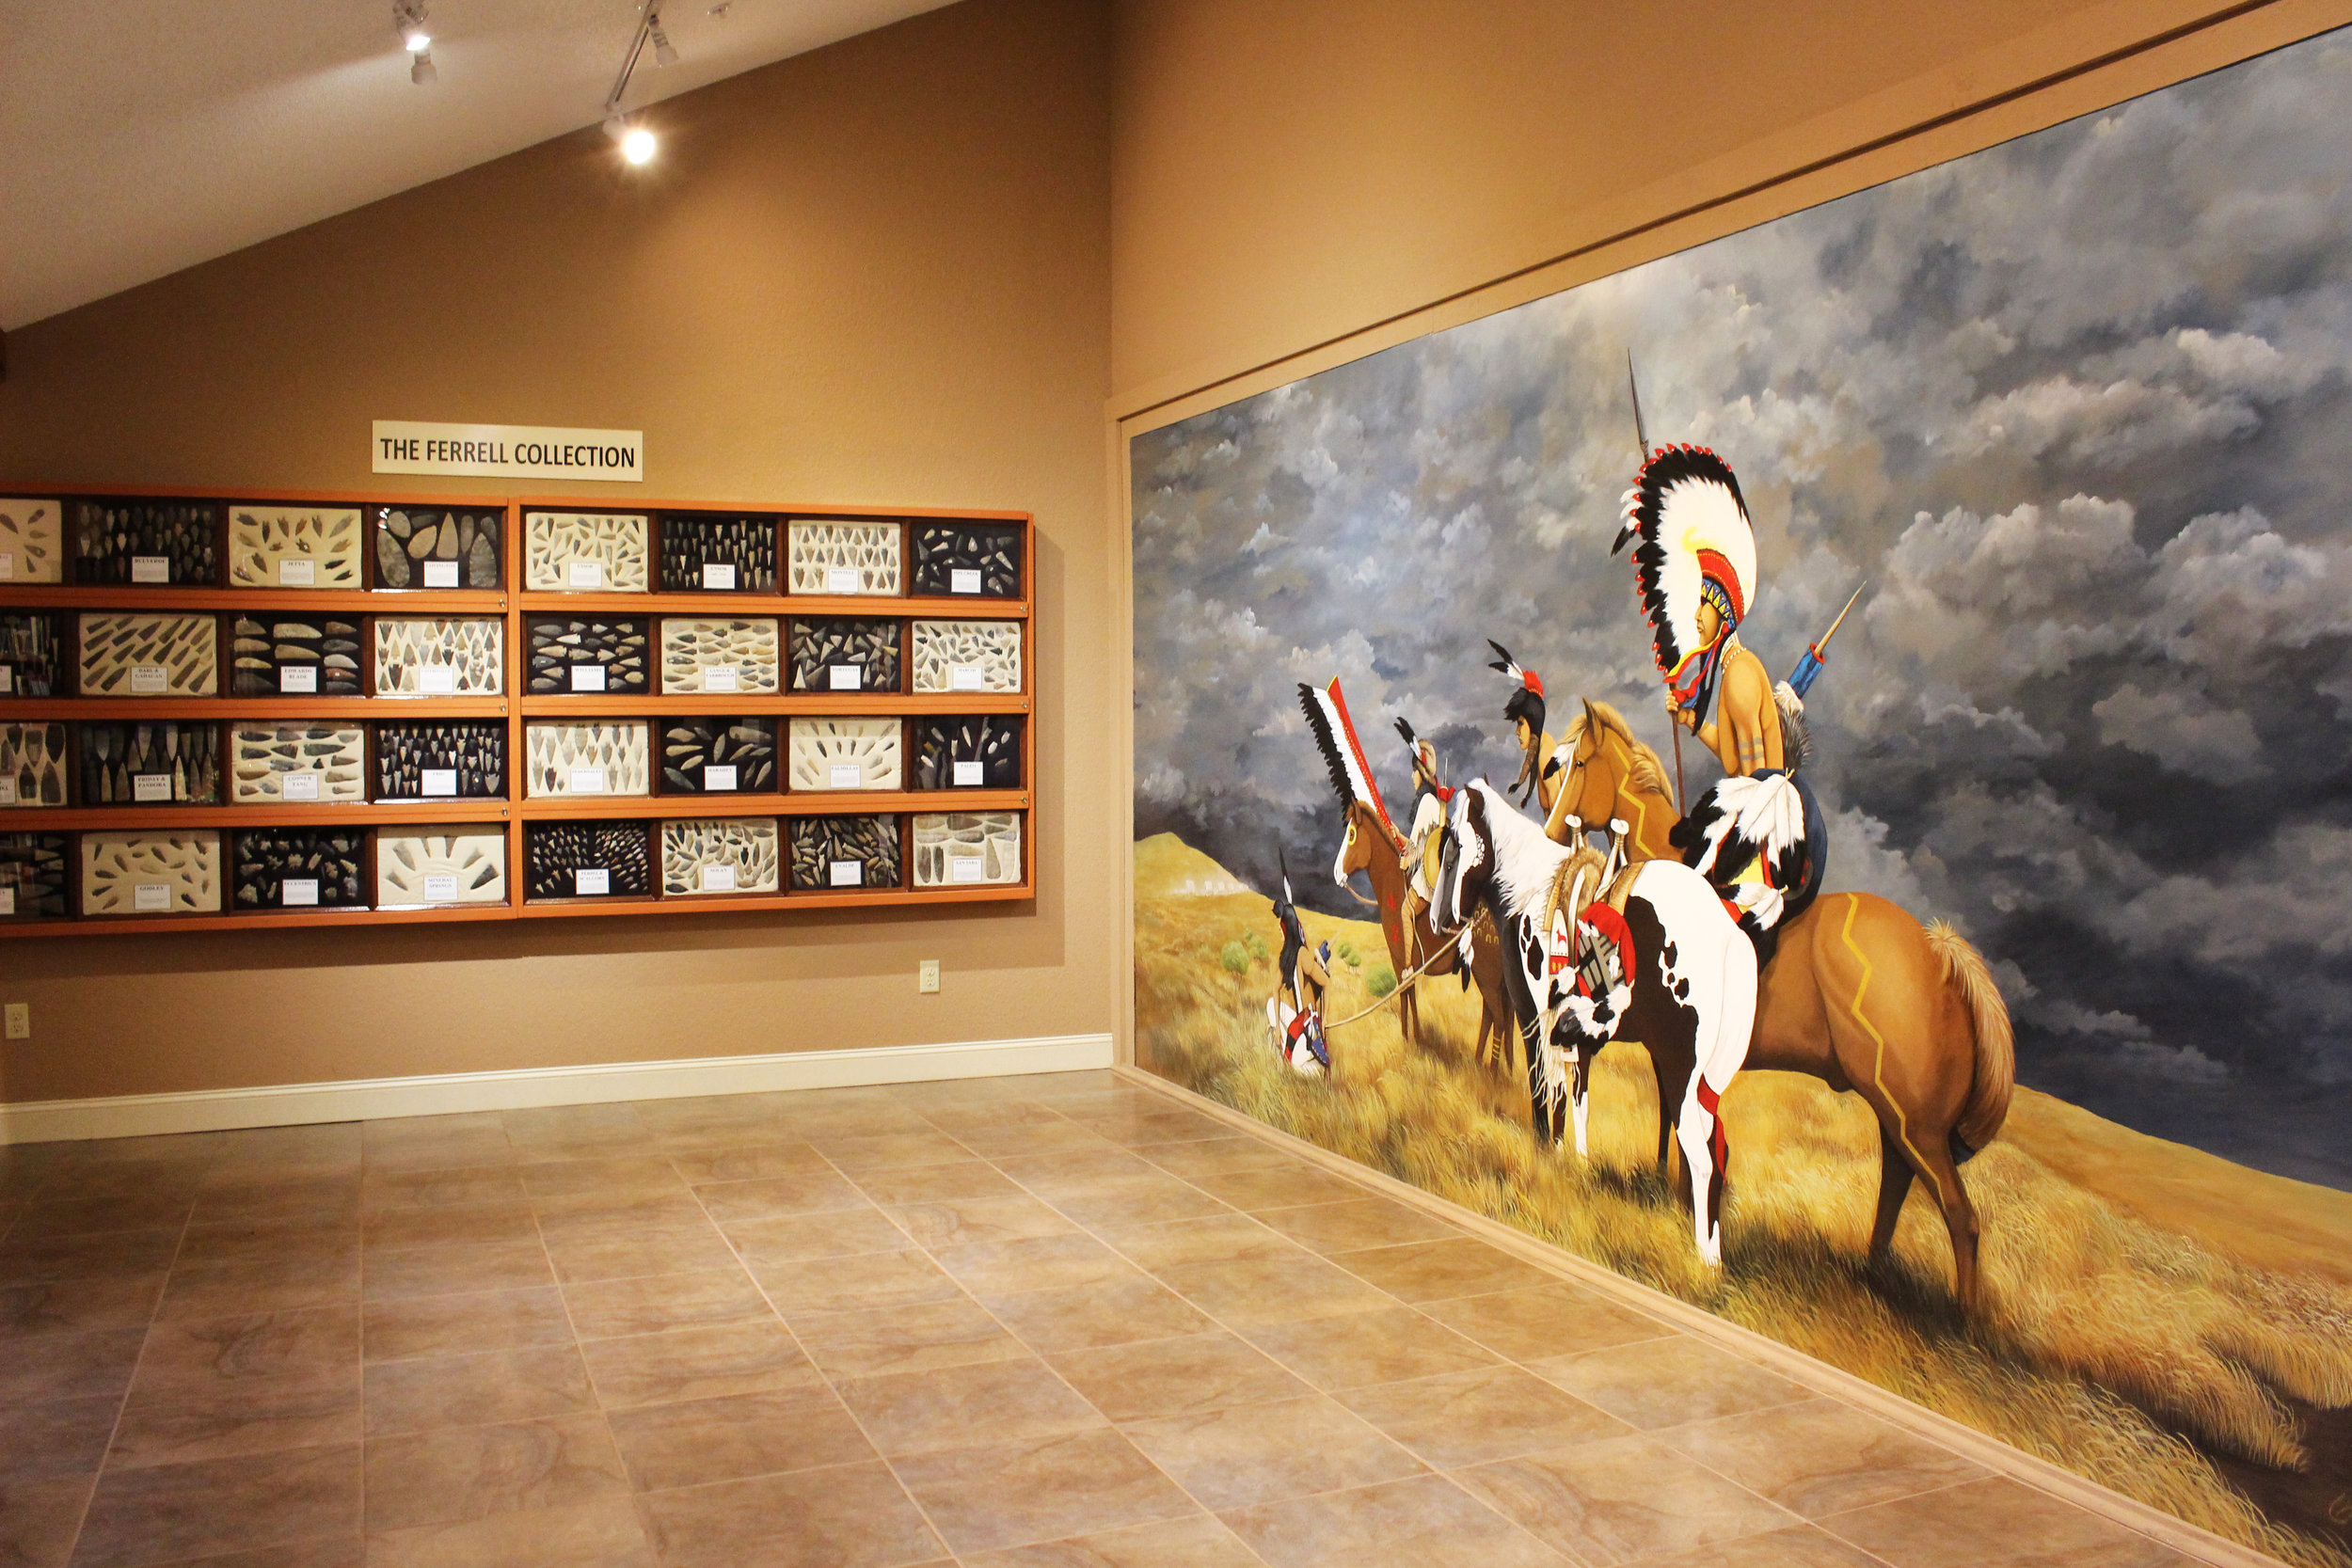 Mural and The Ferrell Collection